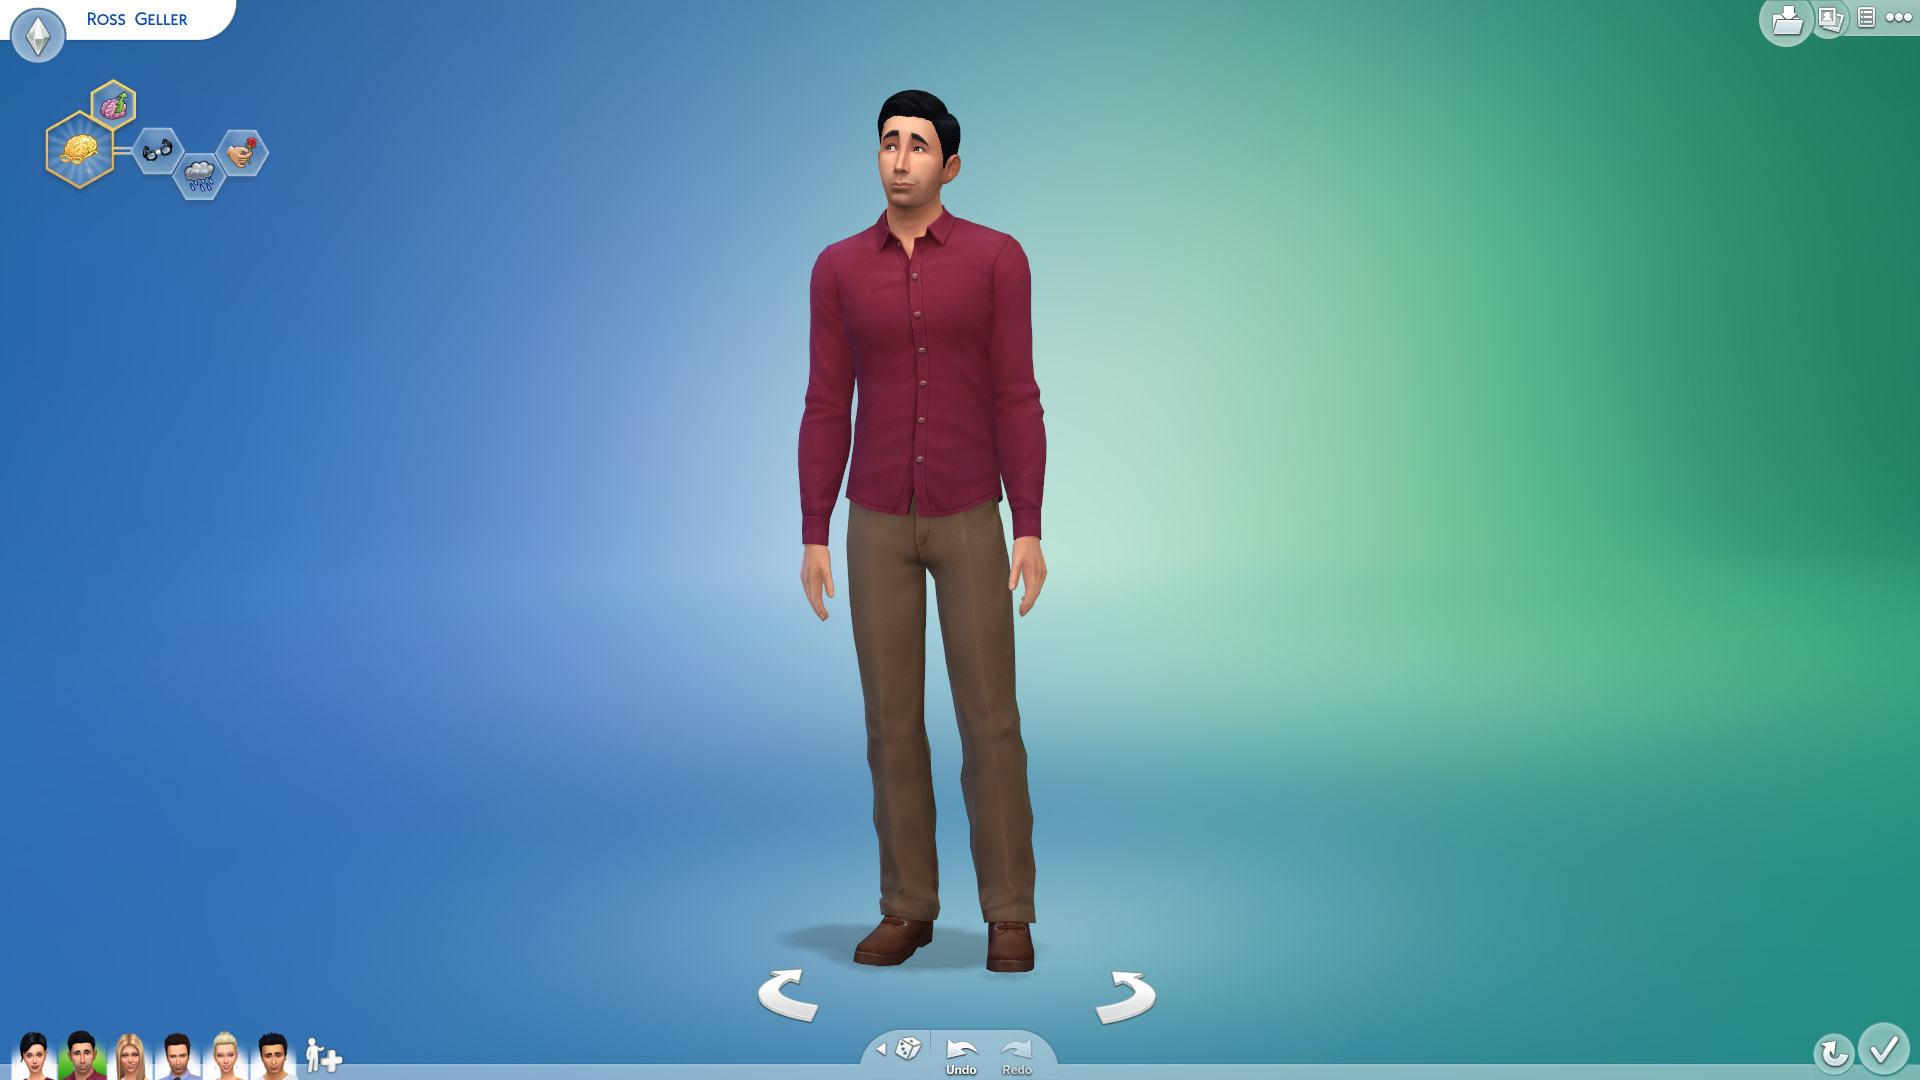 Ross Gellar In Sims